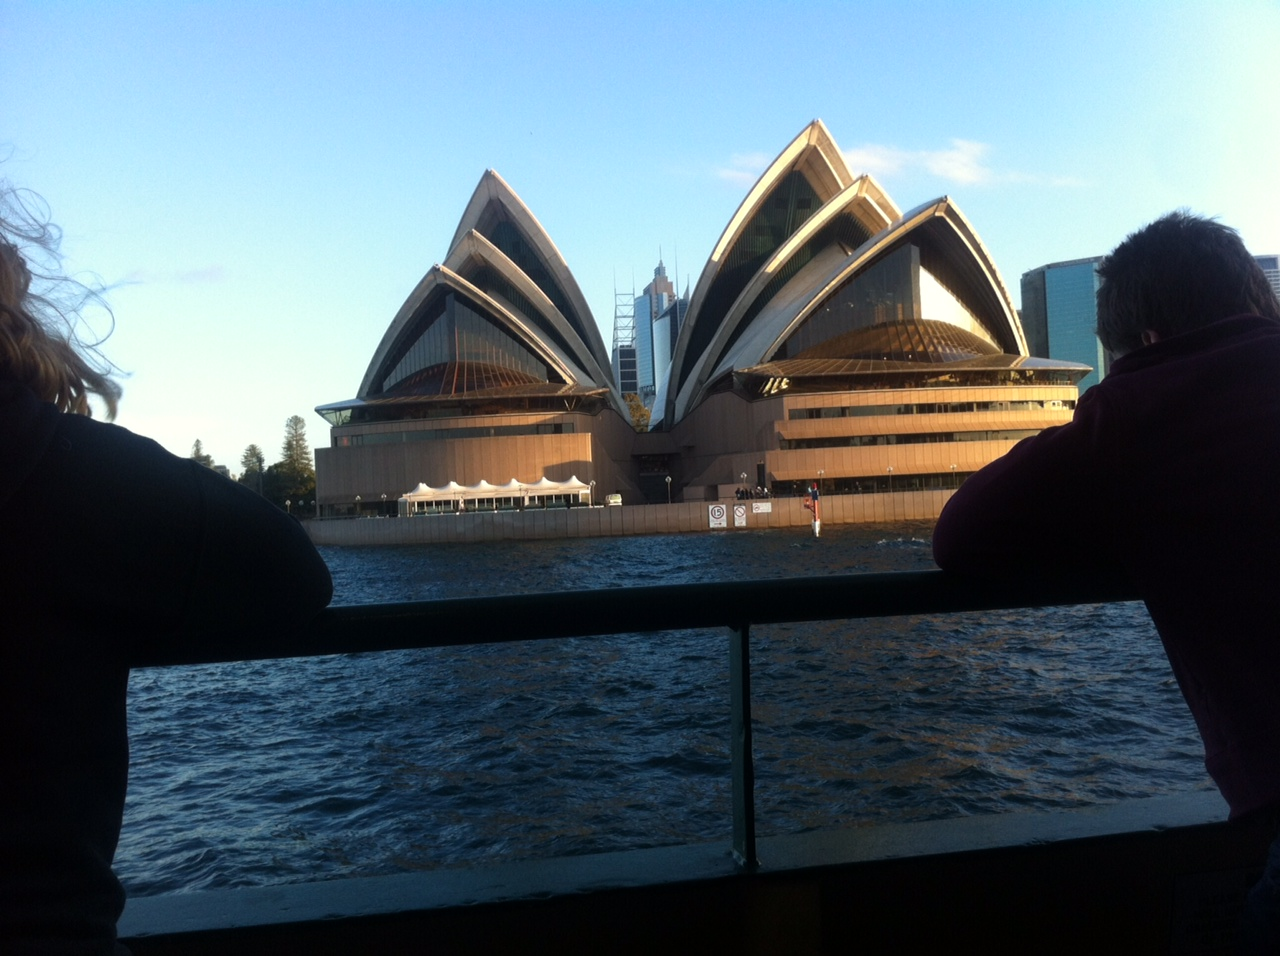 The Sydney Opera House from the front